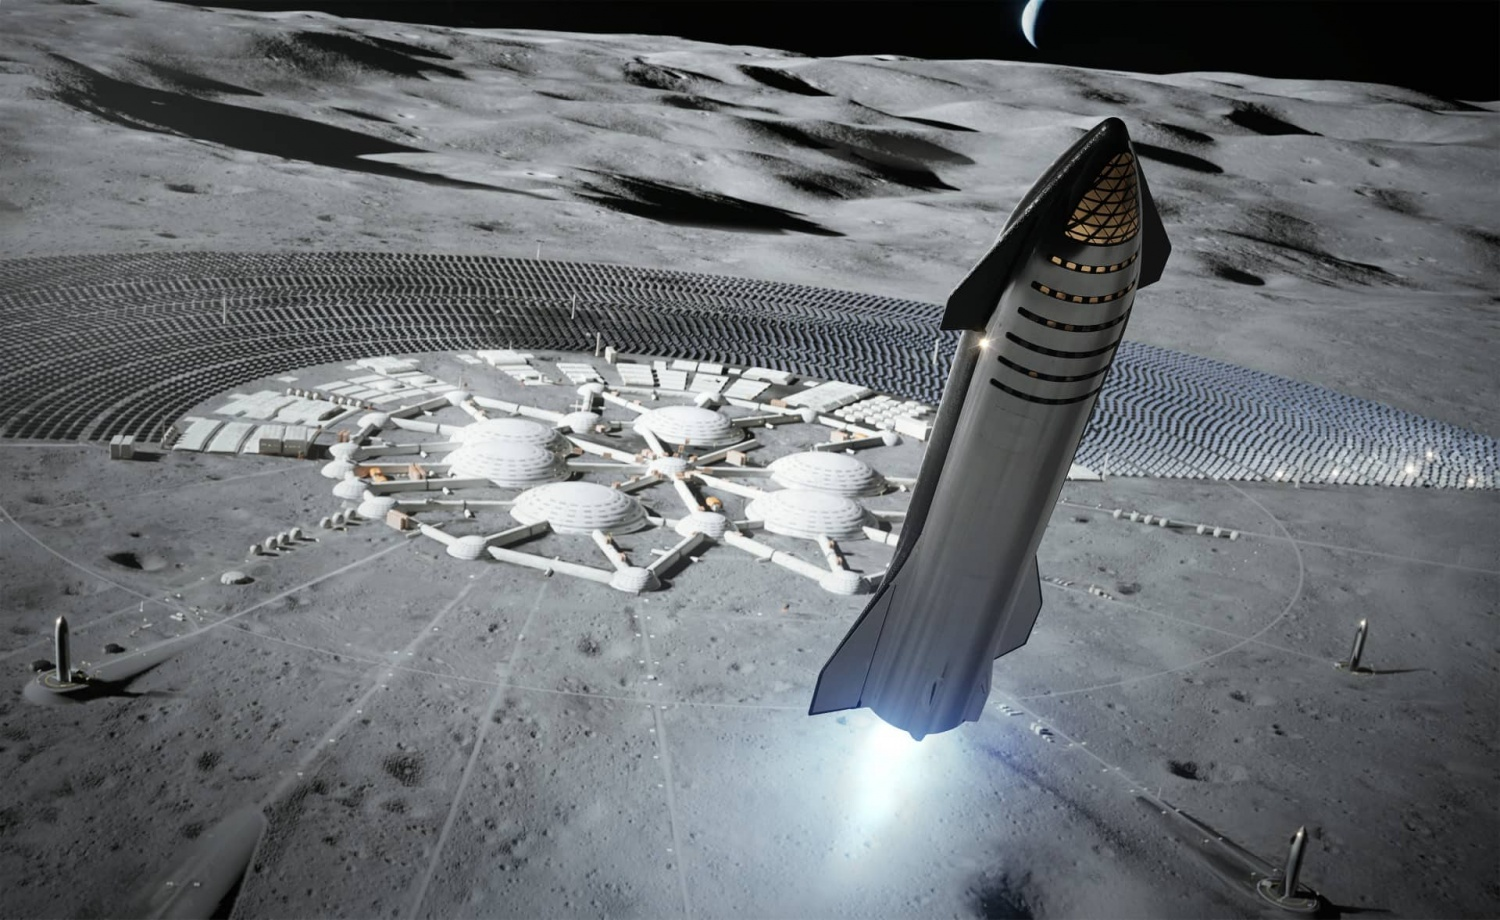 SpaceX is making plans to build moon colonies, but their MK1 Starship has failed during testing.